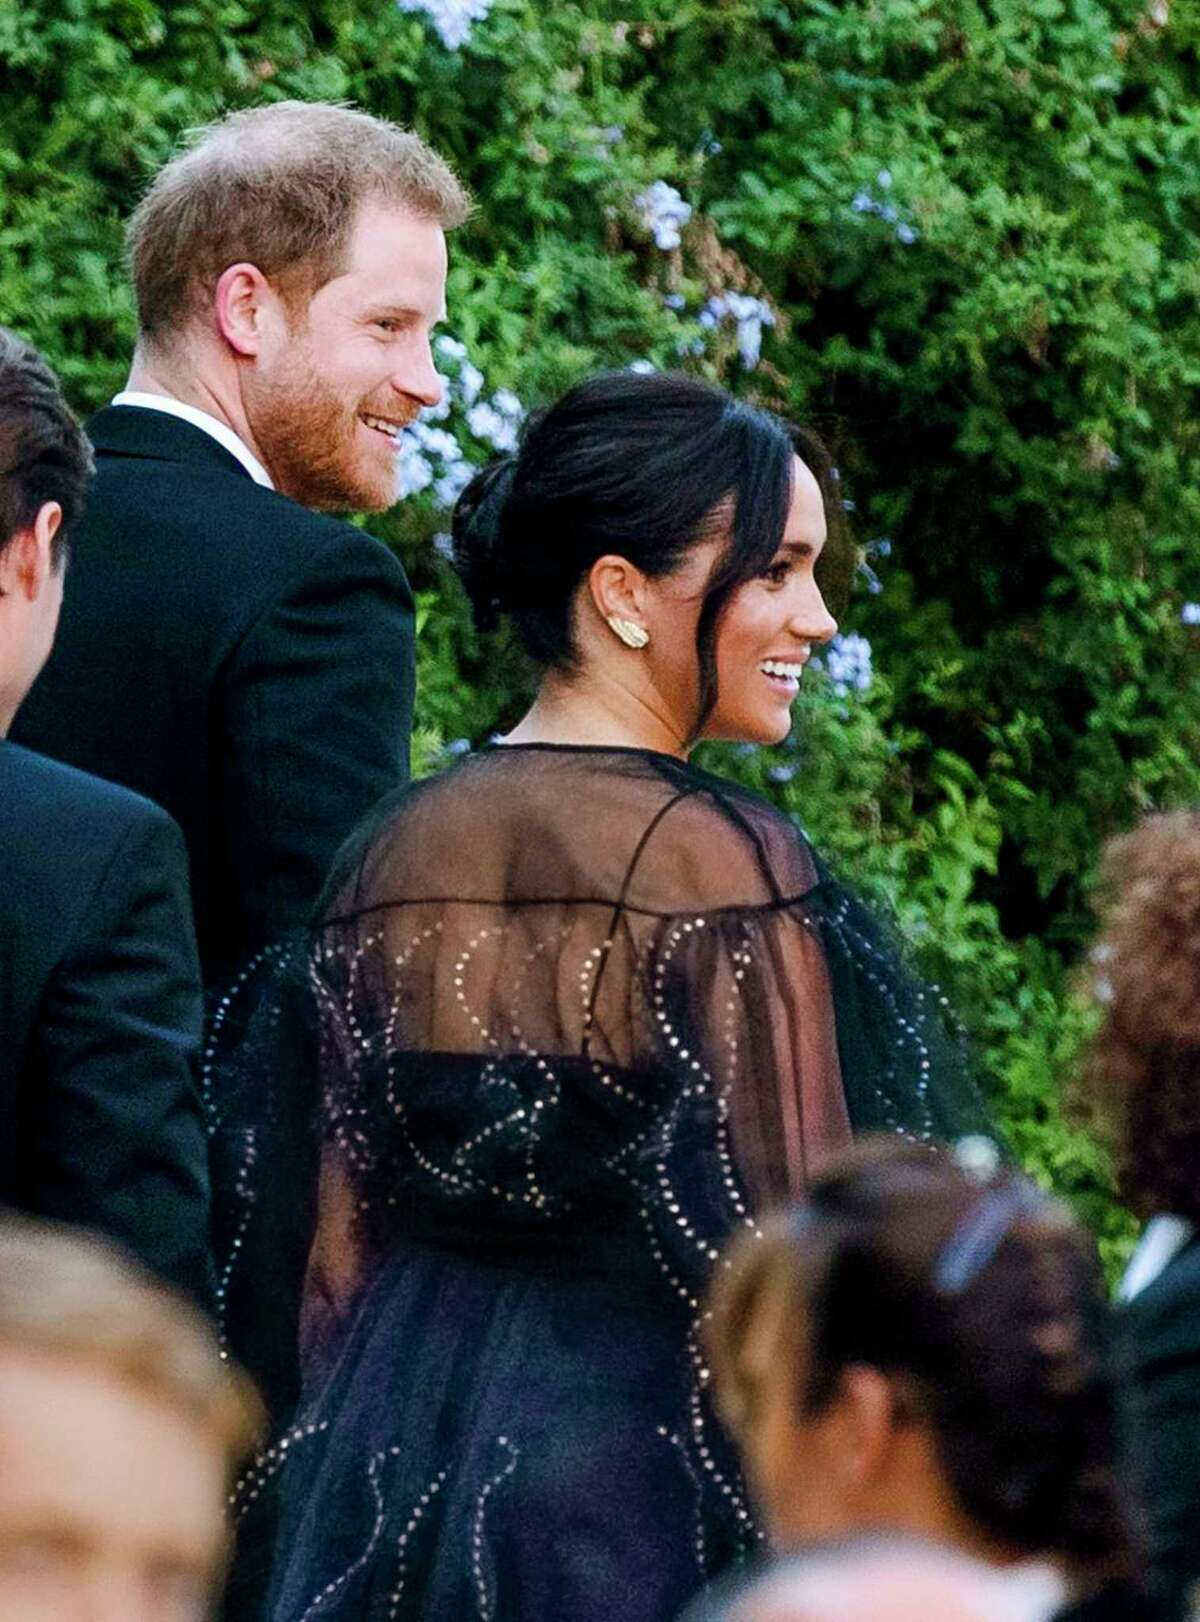 Britain's Prince Harry and his wife Meghan, Duchess of Sussex arrive to the wedding of Misha Nonoo and Michael Hess in Rome, Friday, Sept. 20, 2019. Britain's Prince Harry and his wife Meghan, Duchess of Sussex will attend the wedding of their friends before leaving on an official trip to Africa. (Claudio Peri/ANSA via AP)